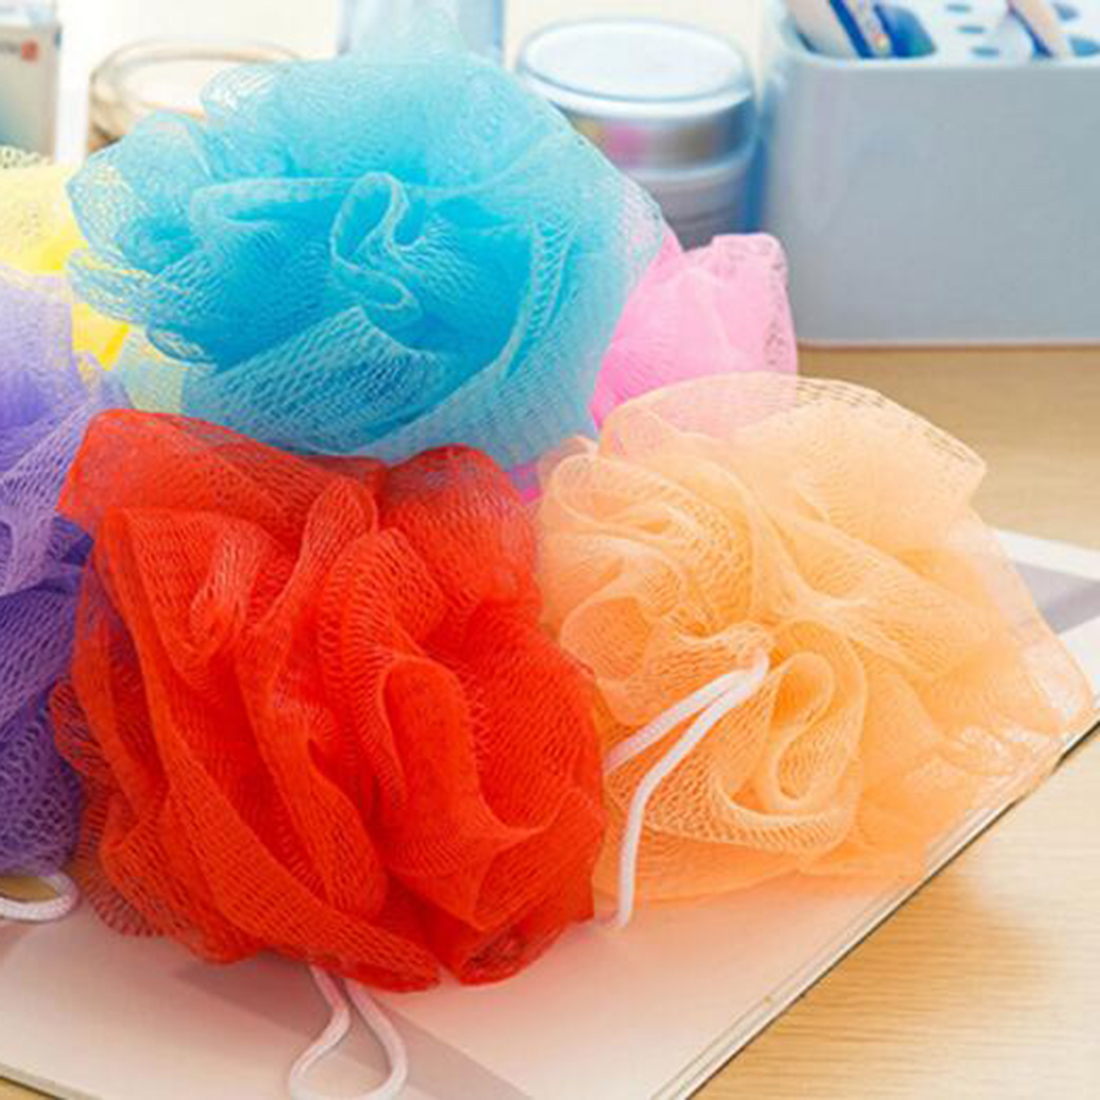 Bubble Loofah Flower Bath Ball Lot Bath Flower Sponge Bath Rub High Quality Bath Toiletries